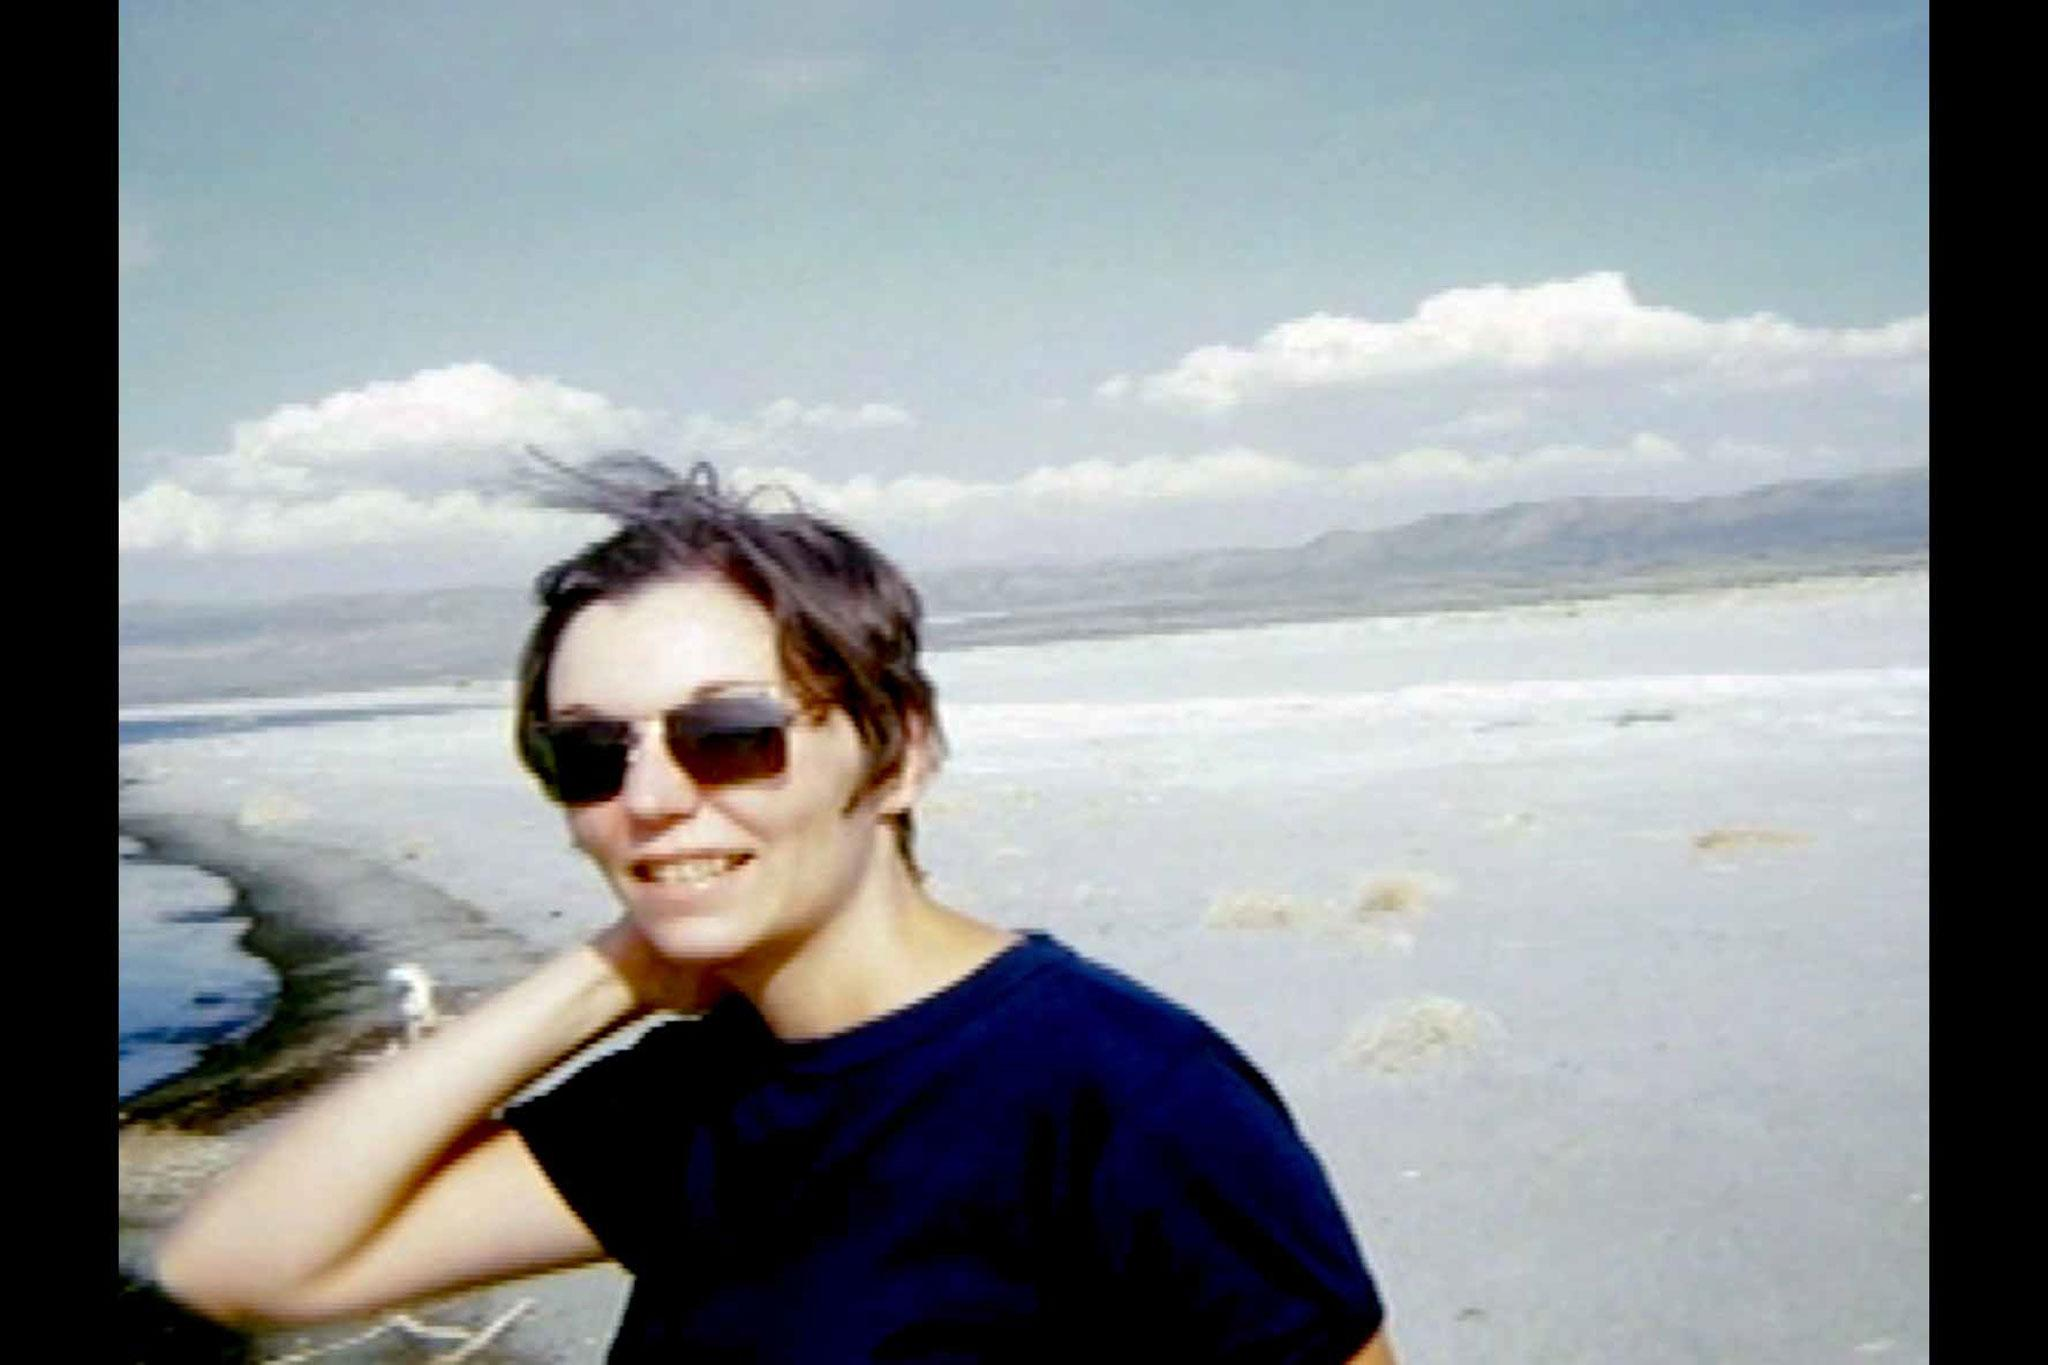 A young woman wearing sunglasses looking at the camera, with blue sky and desert behind her.